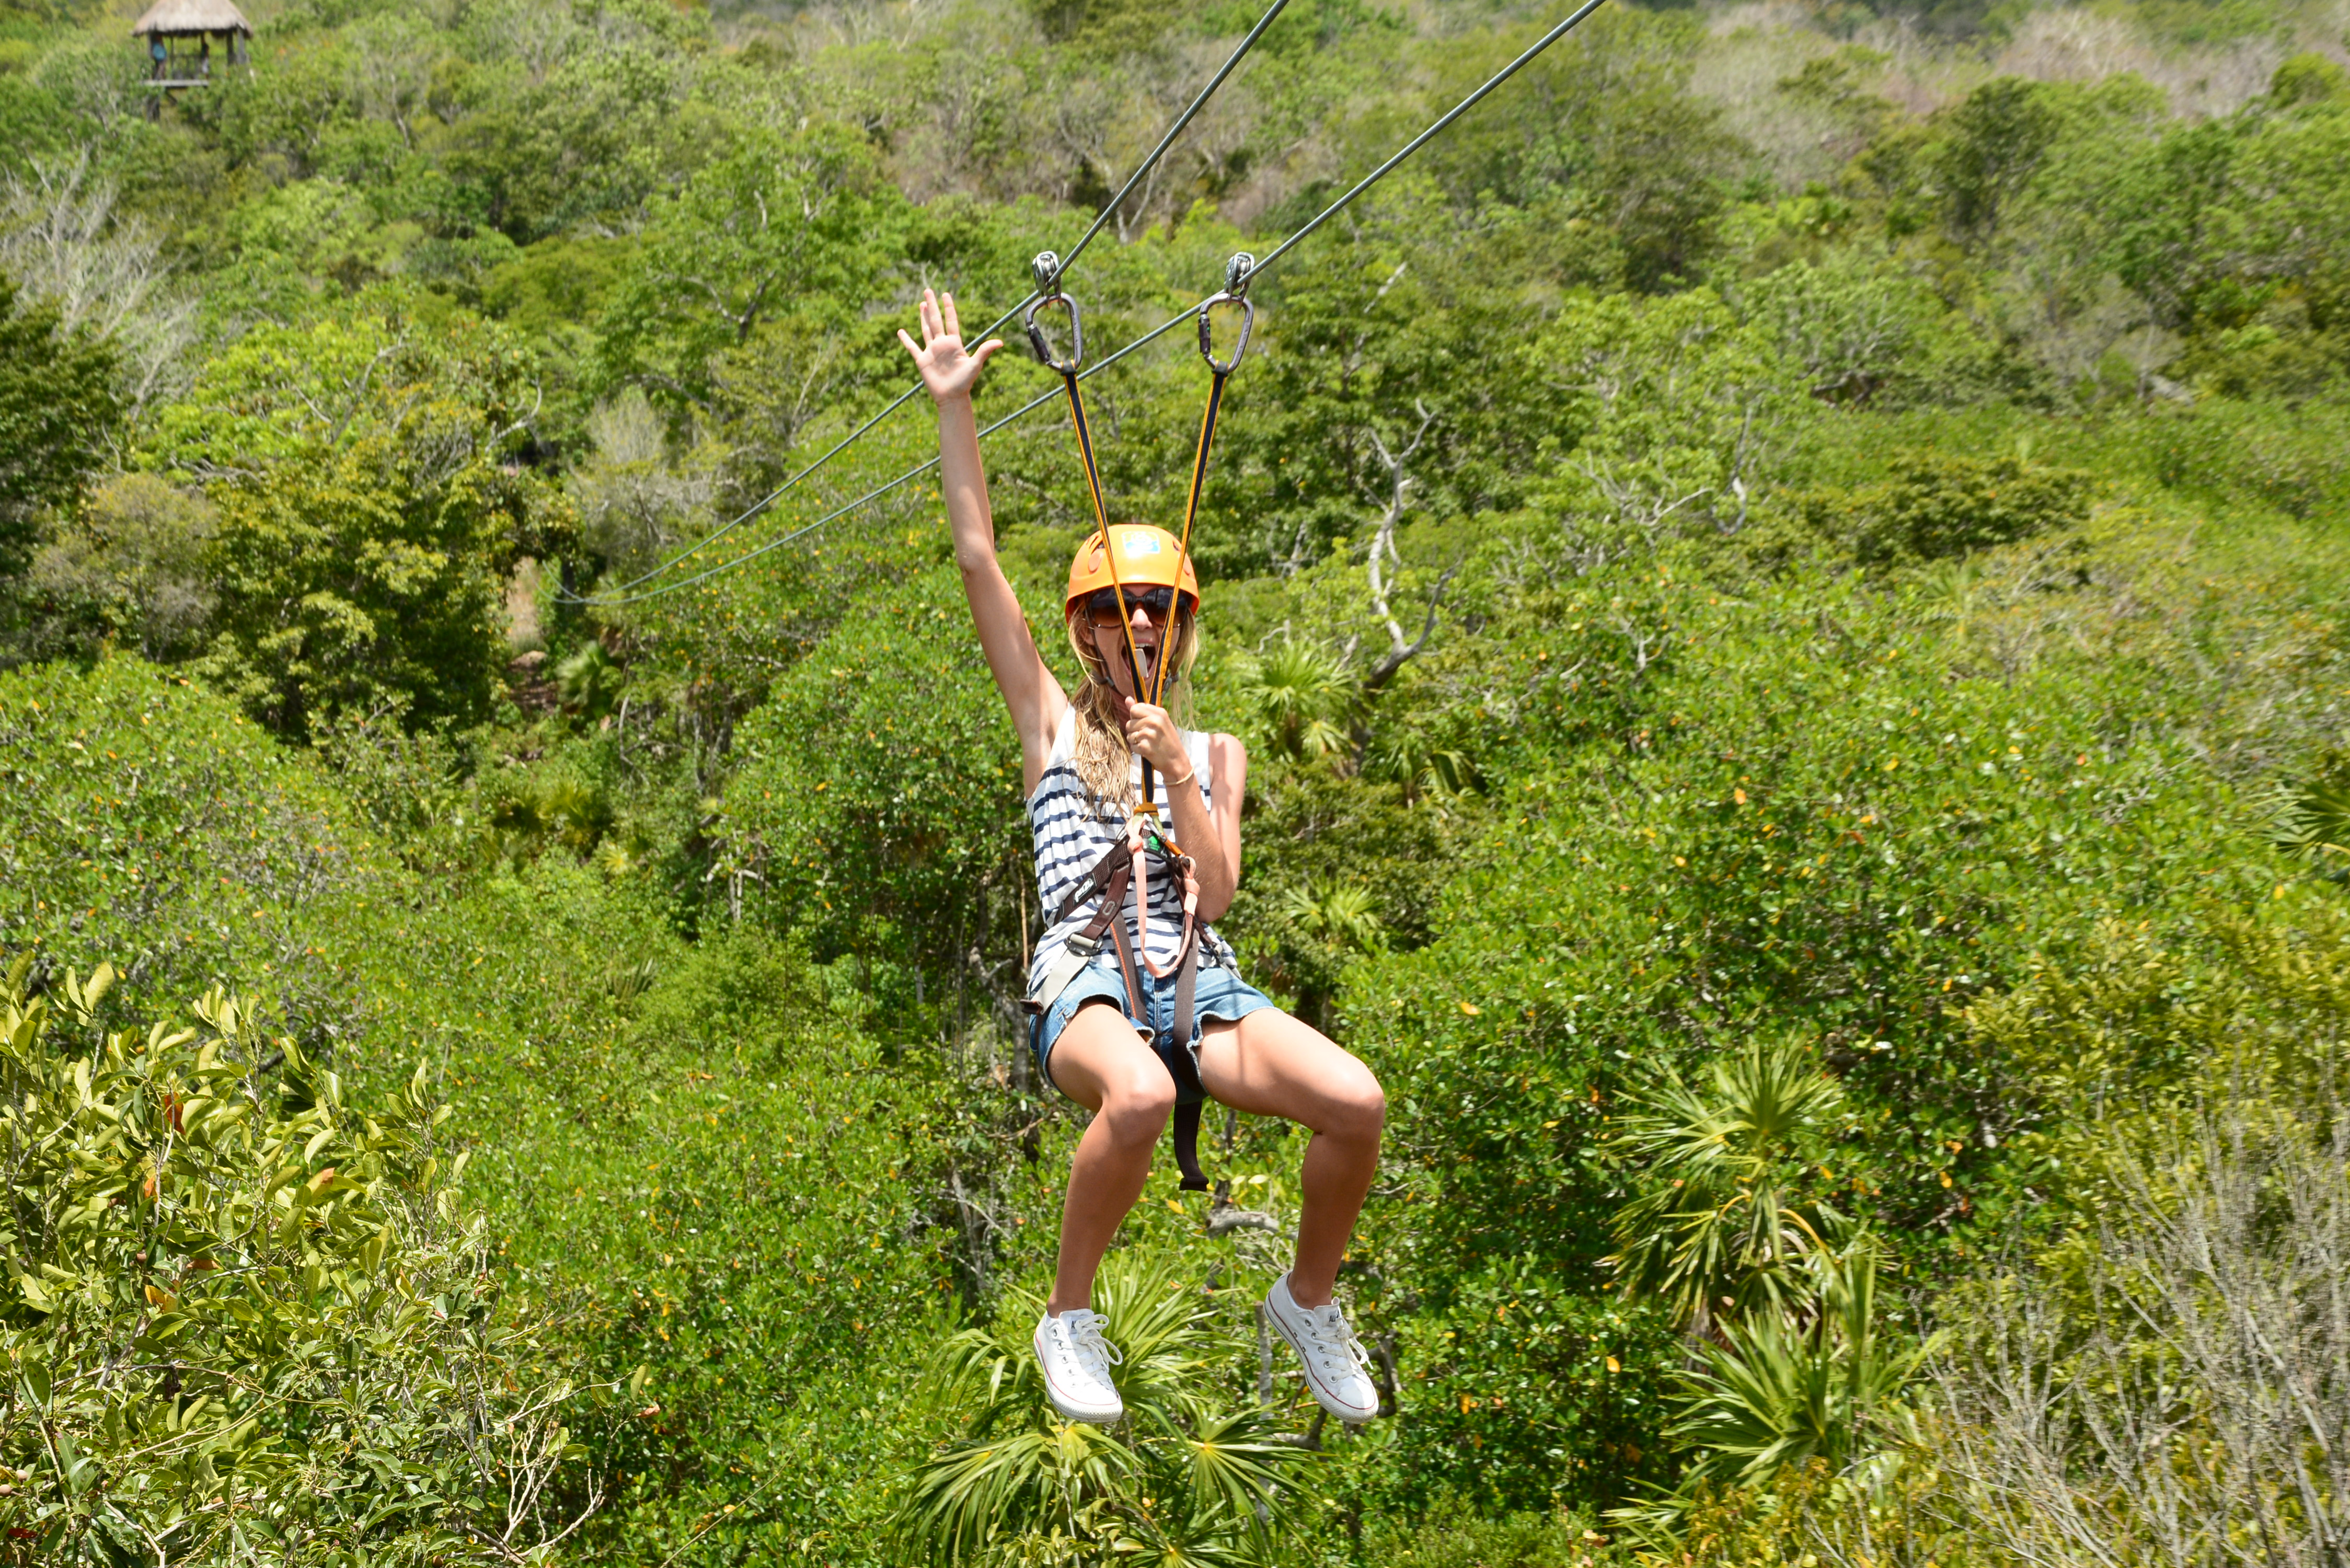 Get married, go zip lining? Might as well. Conquering fears in the Mayan Jungle. -Christina Markos